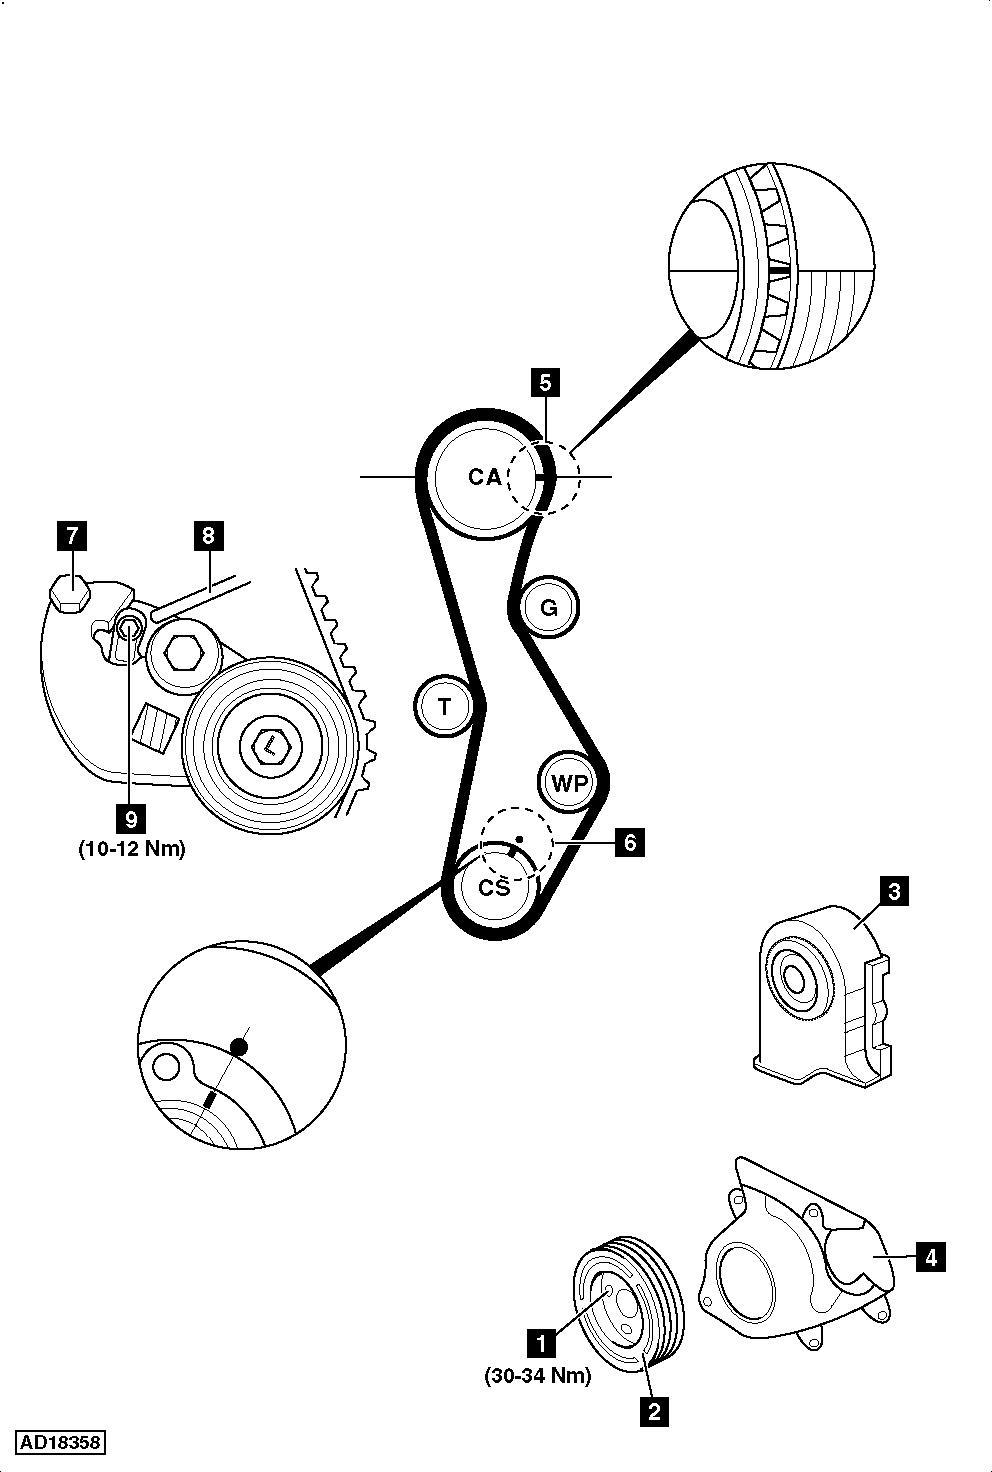 Wiring Diagram: 13 2007 Hyundai Elantra Belt Diagram